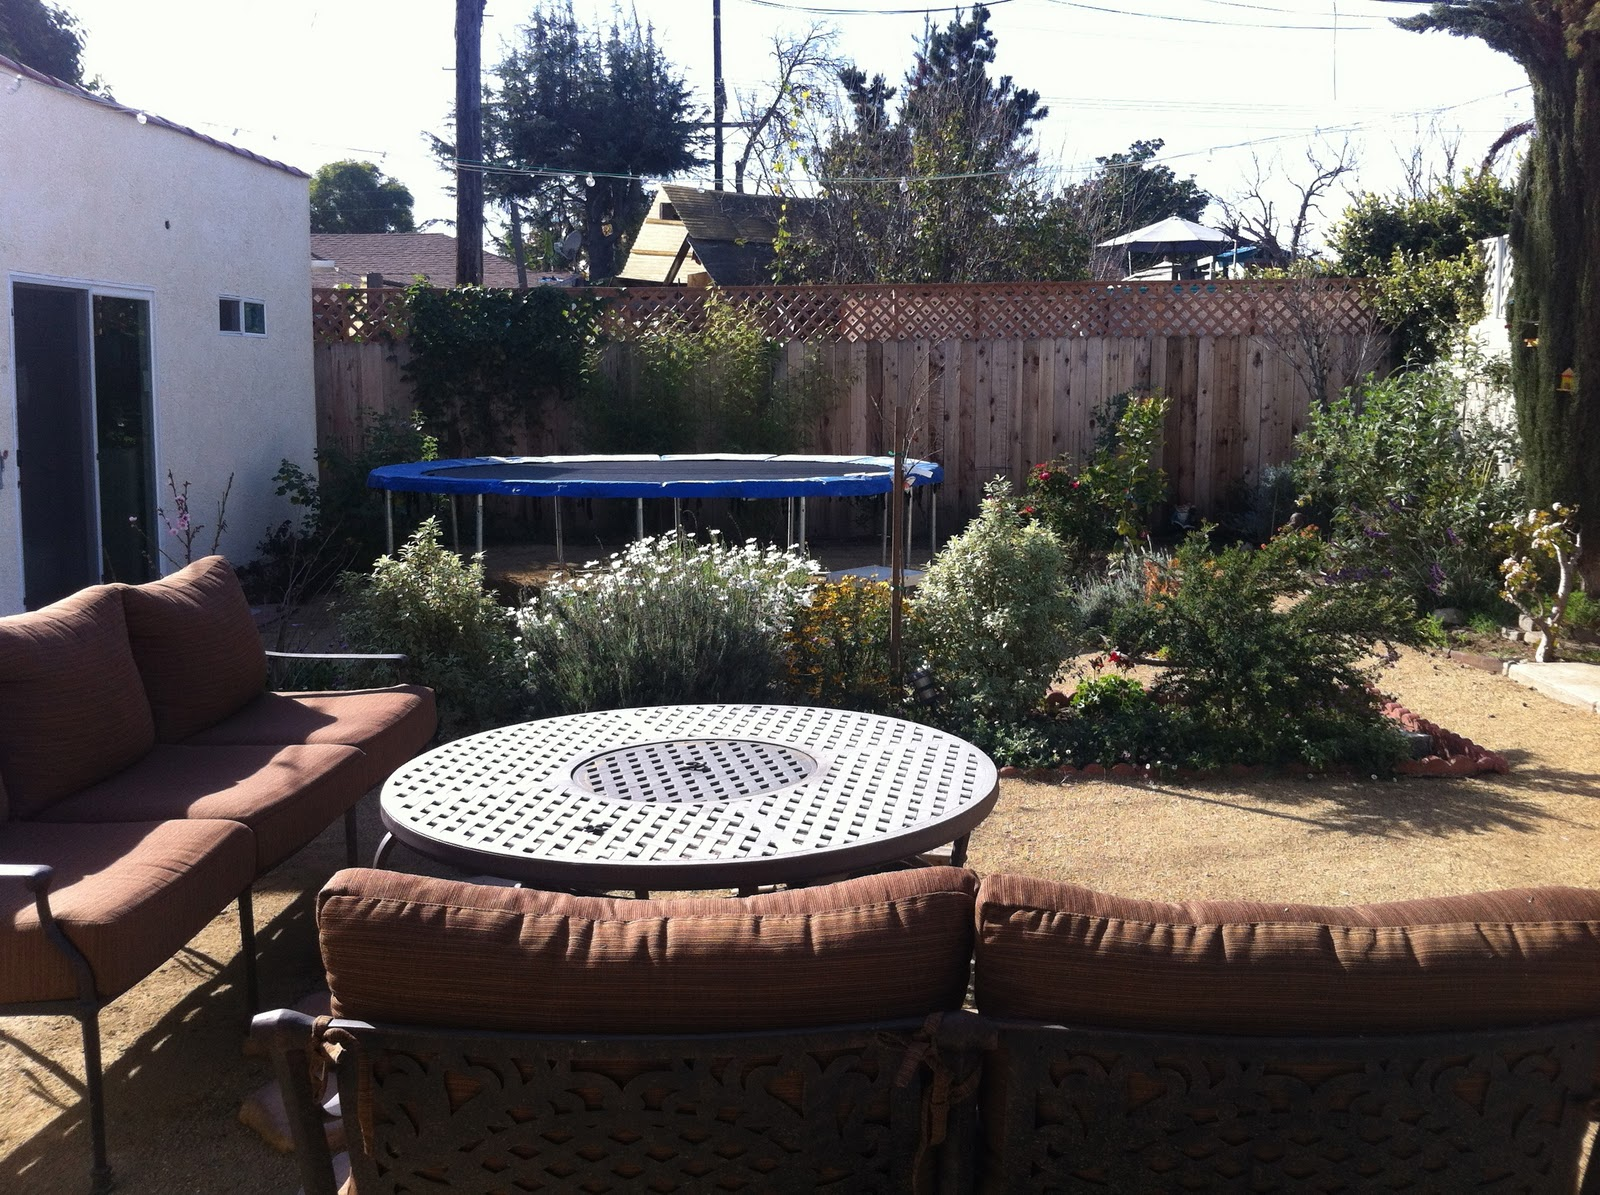 2018 mar vista green garden showcase 3741 moore street the front yard of this do it yourself garden started in the summer of 2009 followed by the backyard in the fall of 2011 first shown in 2012 solutioingenieria Gallery